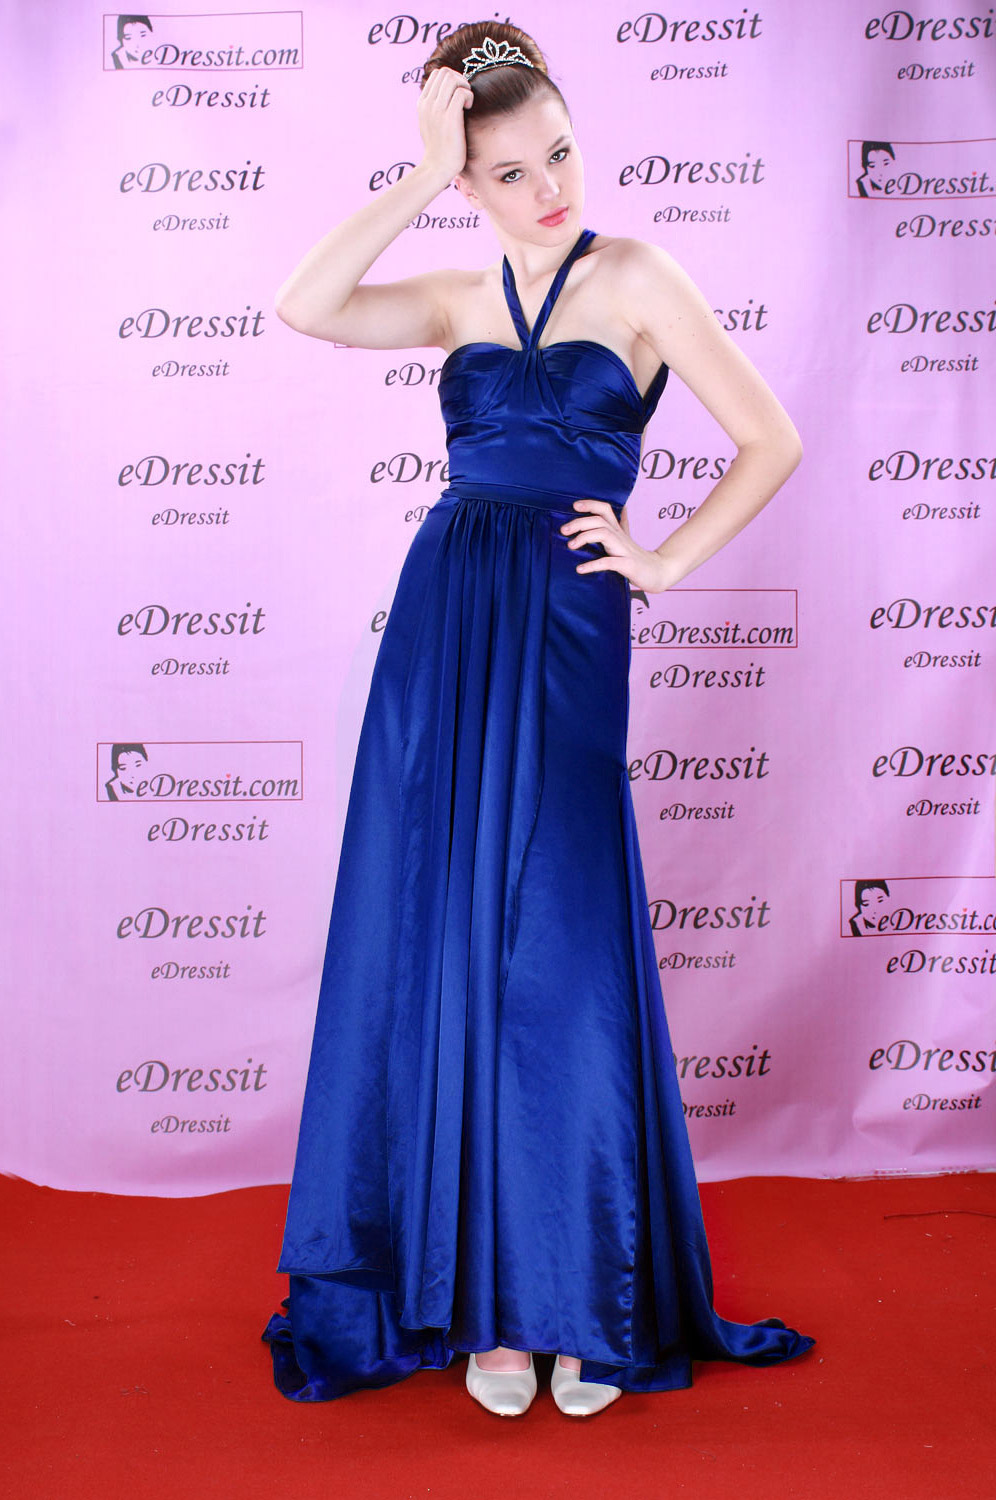 On sale !! eDressit dark blue Prom Gown Evening Dress (00880705C)